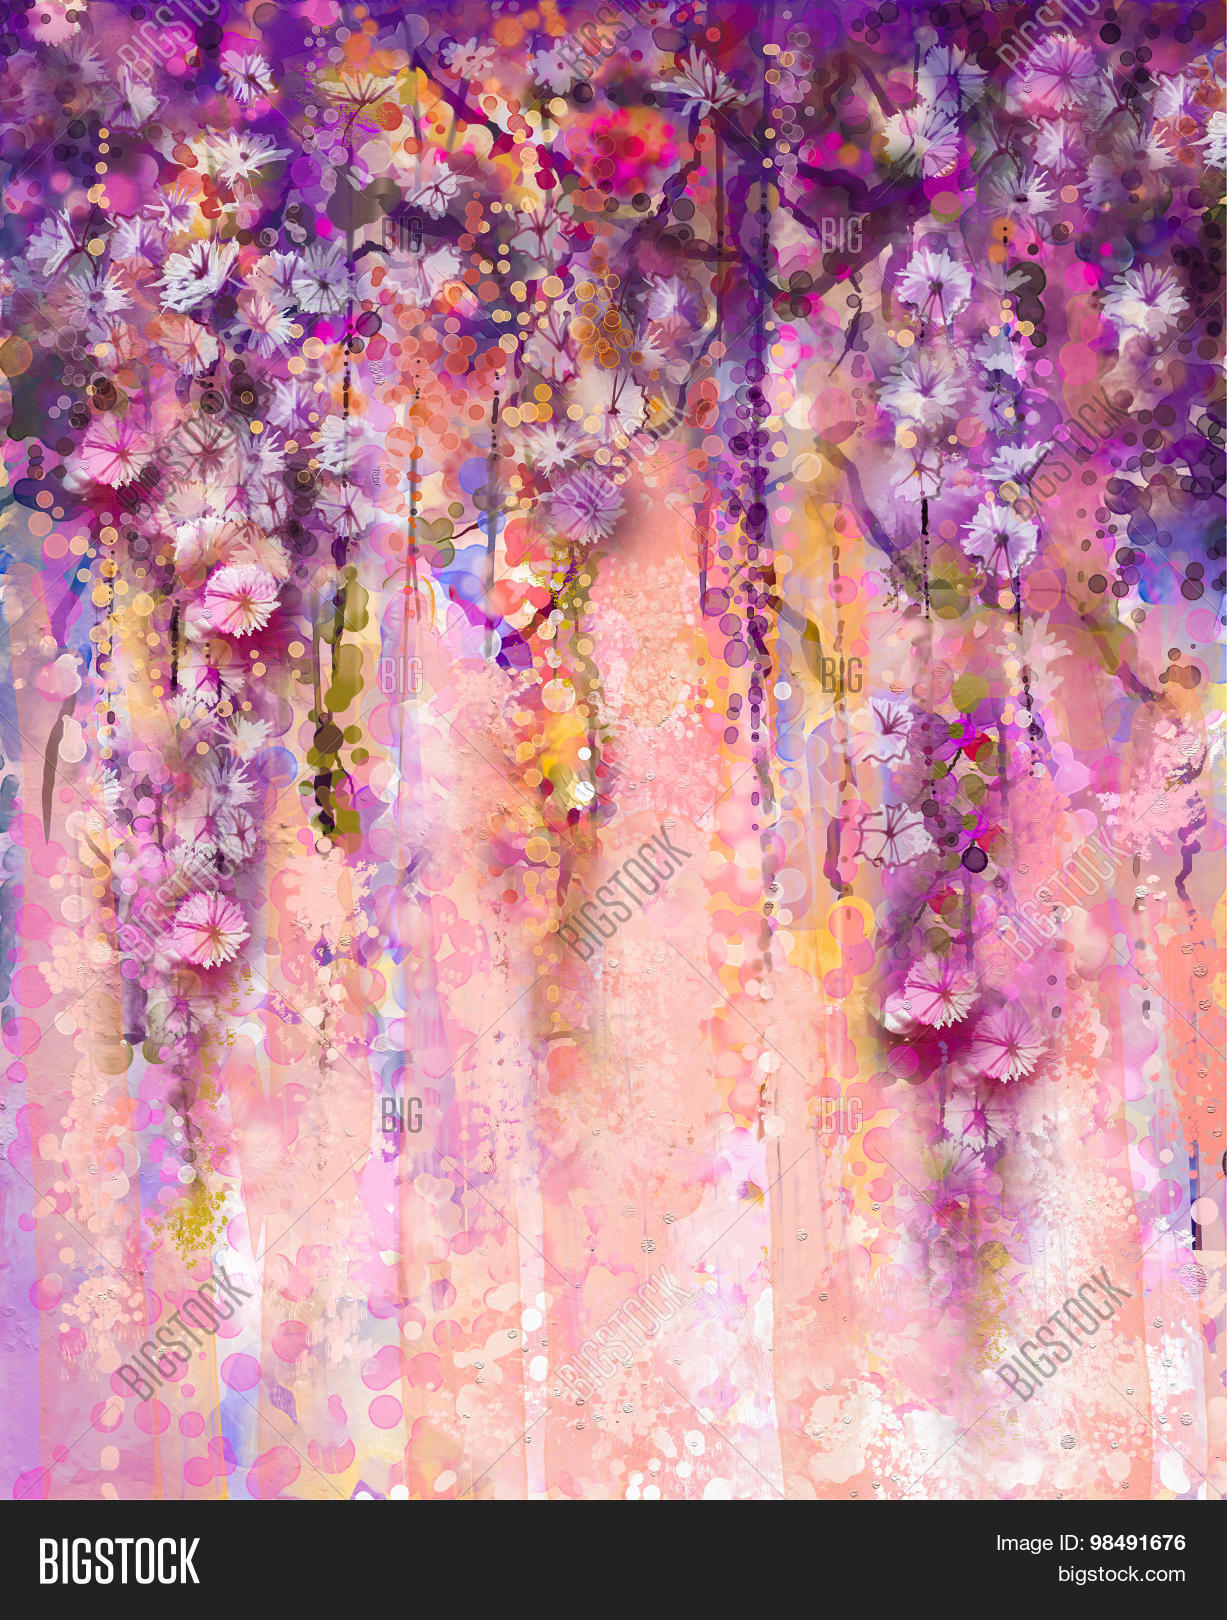 Abstract Pink Violet Image Photo Free Trial Bigstock